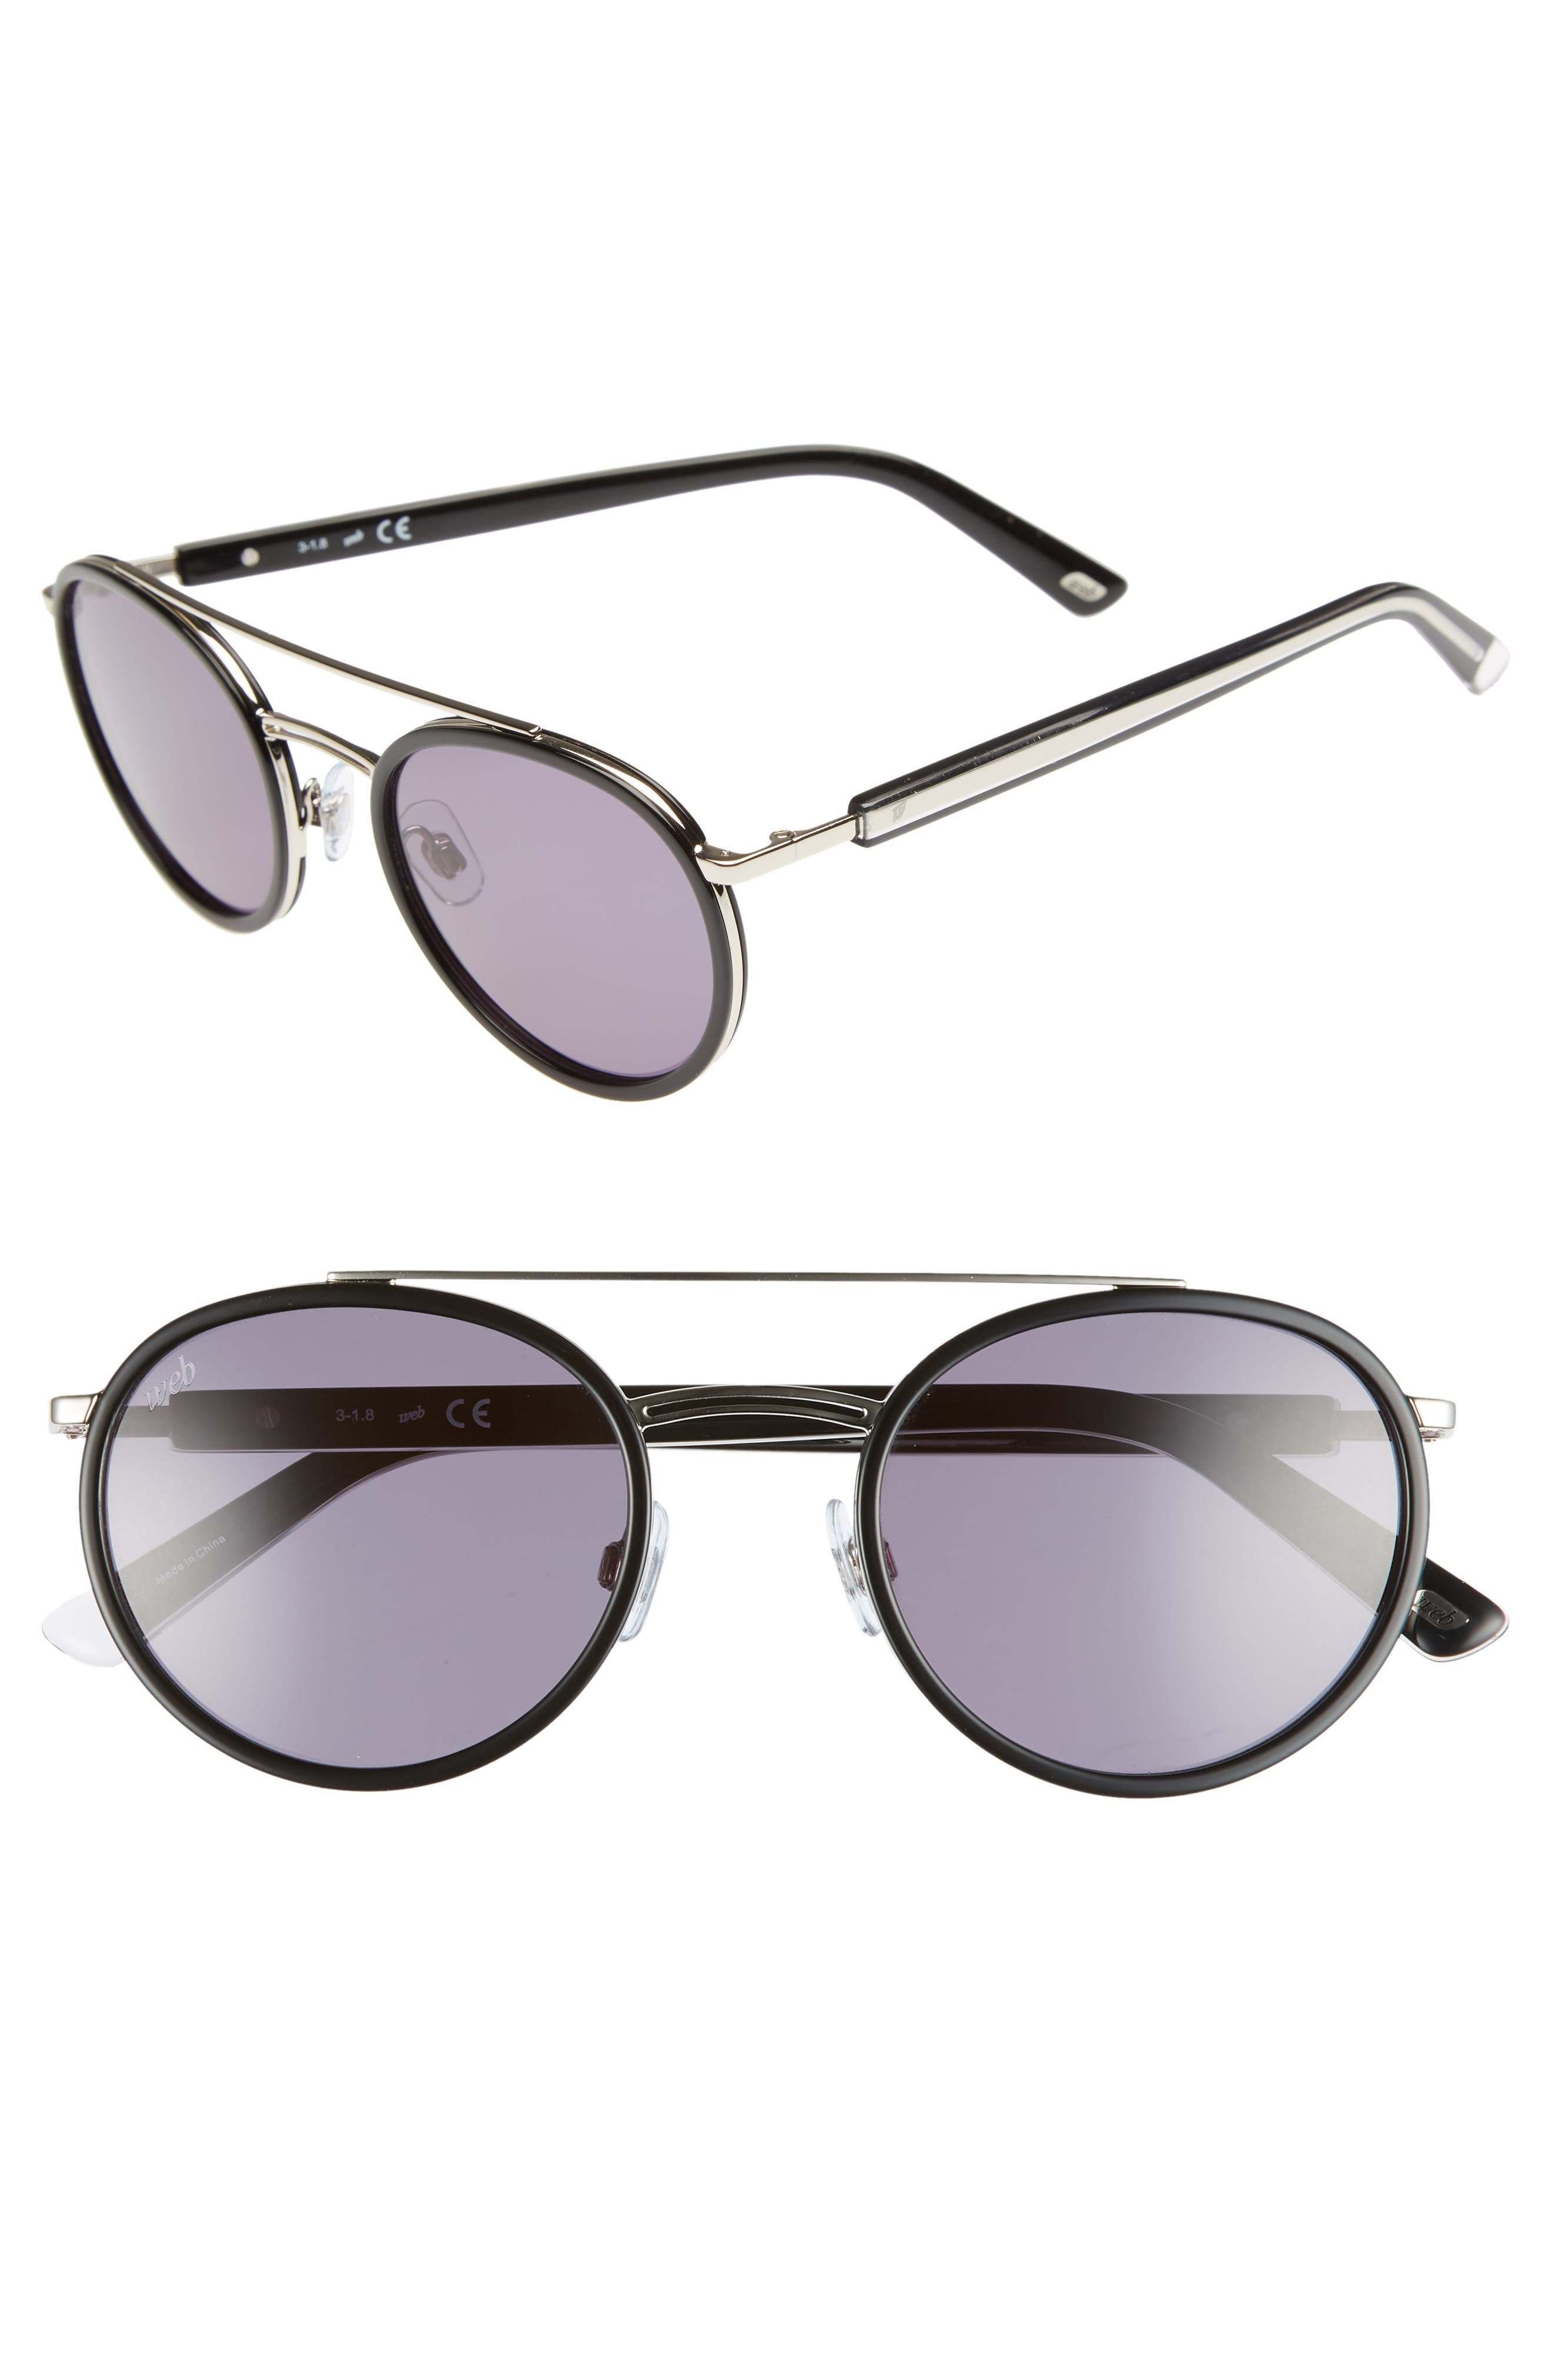 52mm Aviator Sunglasses,                         Main,                         color, SHINY BLACK/ SMOKE